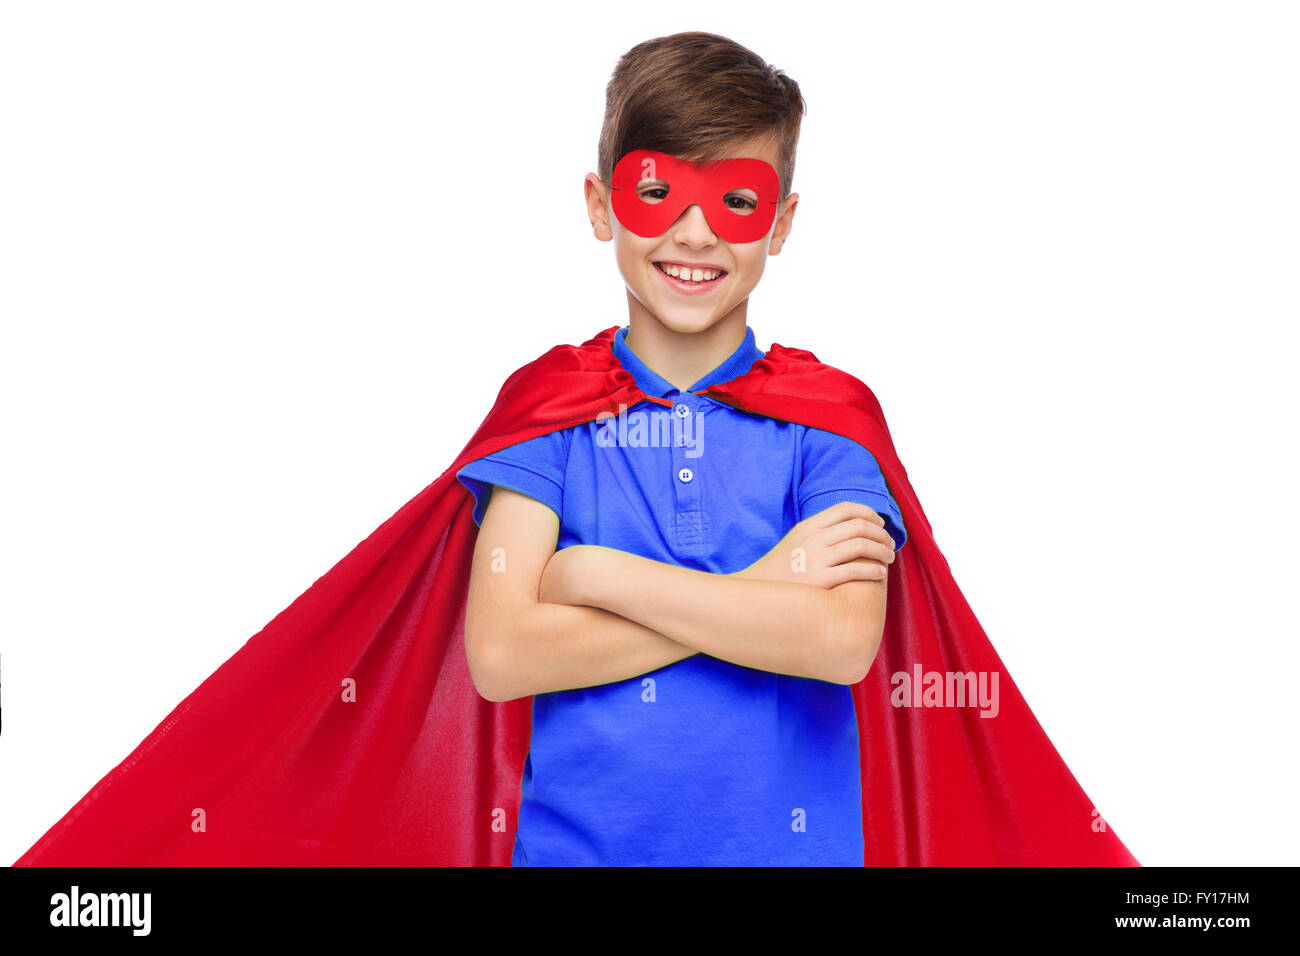 boy in red super hero cape and mask - Stock Image